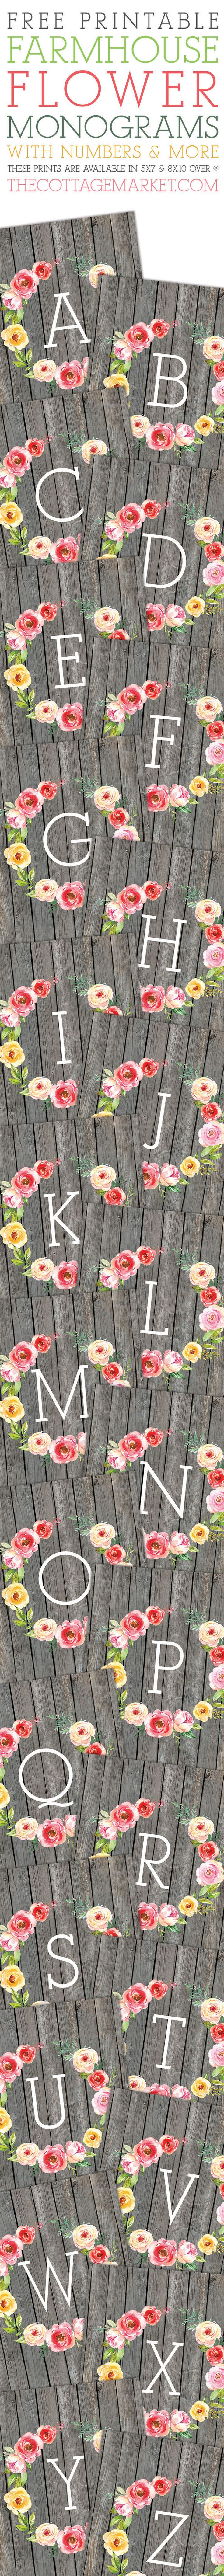 It's FRIDAY and that means one thing here at The Cottage Market…it's FREE PRINTABLE Day!!! We have a brand new Free Printable for you today that will add that extra bit of farmhcharm to any home!!! Free Printable Farmhouse Flower Monograms and More! These beautiful prints will be the perfect addition to any wall, shelf or …